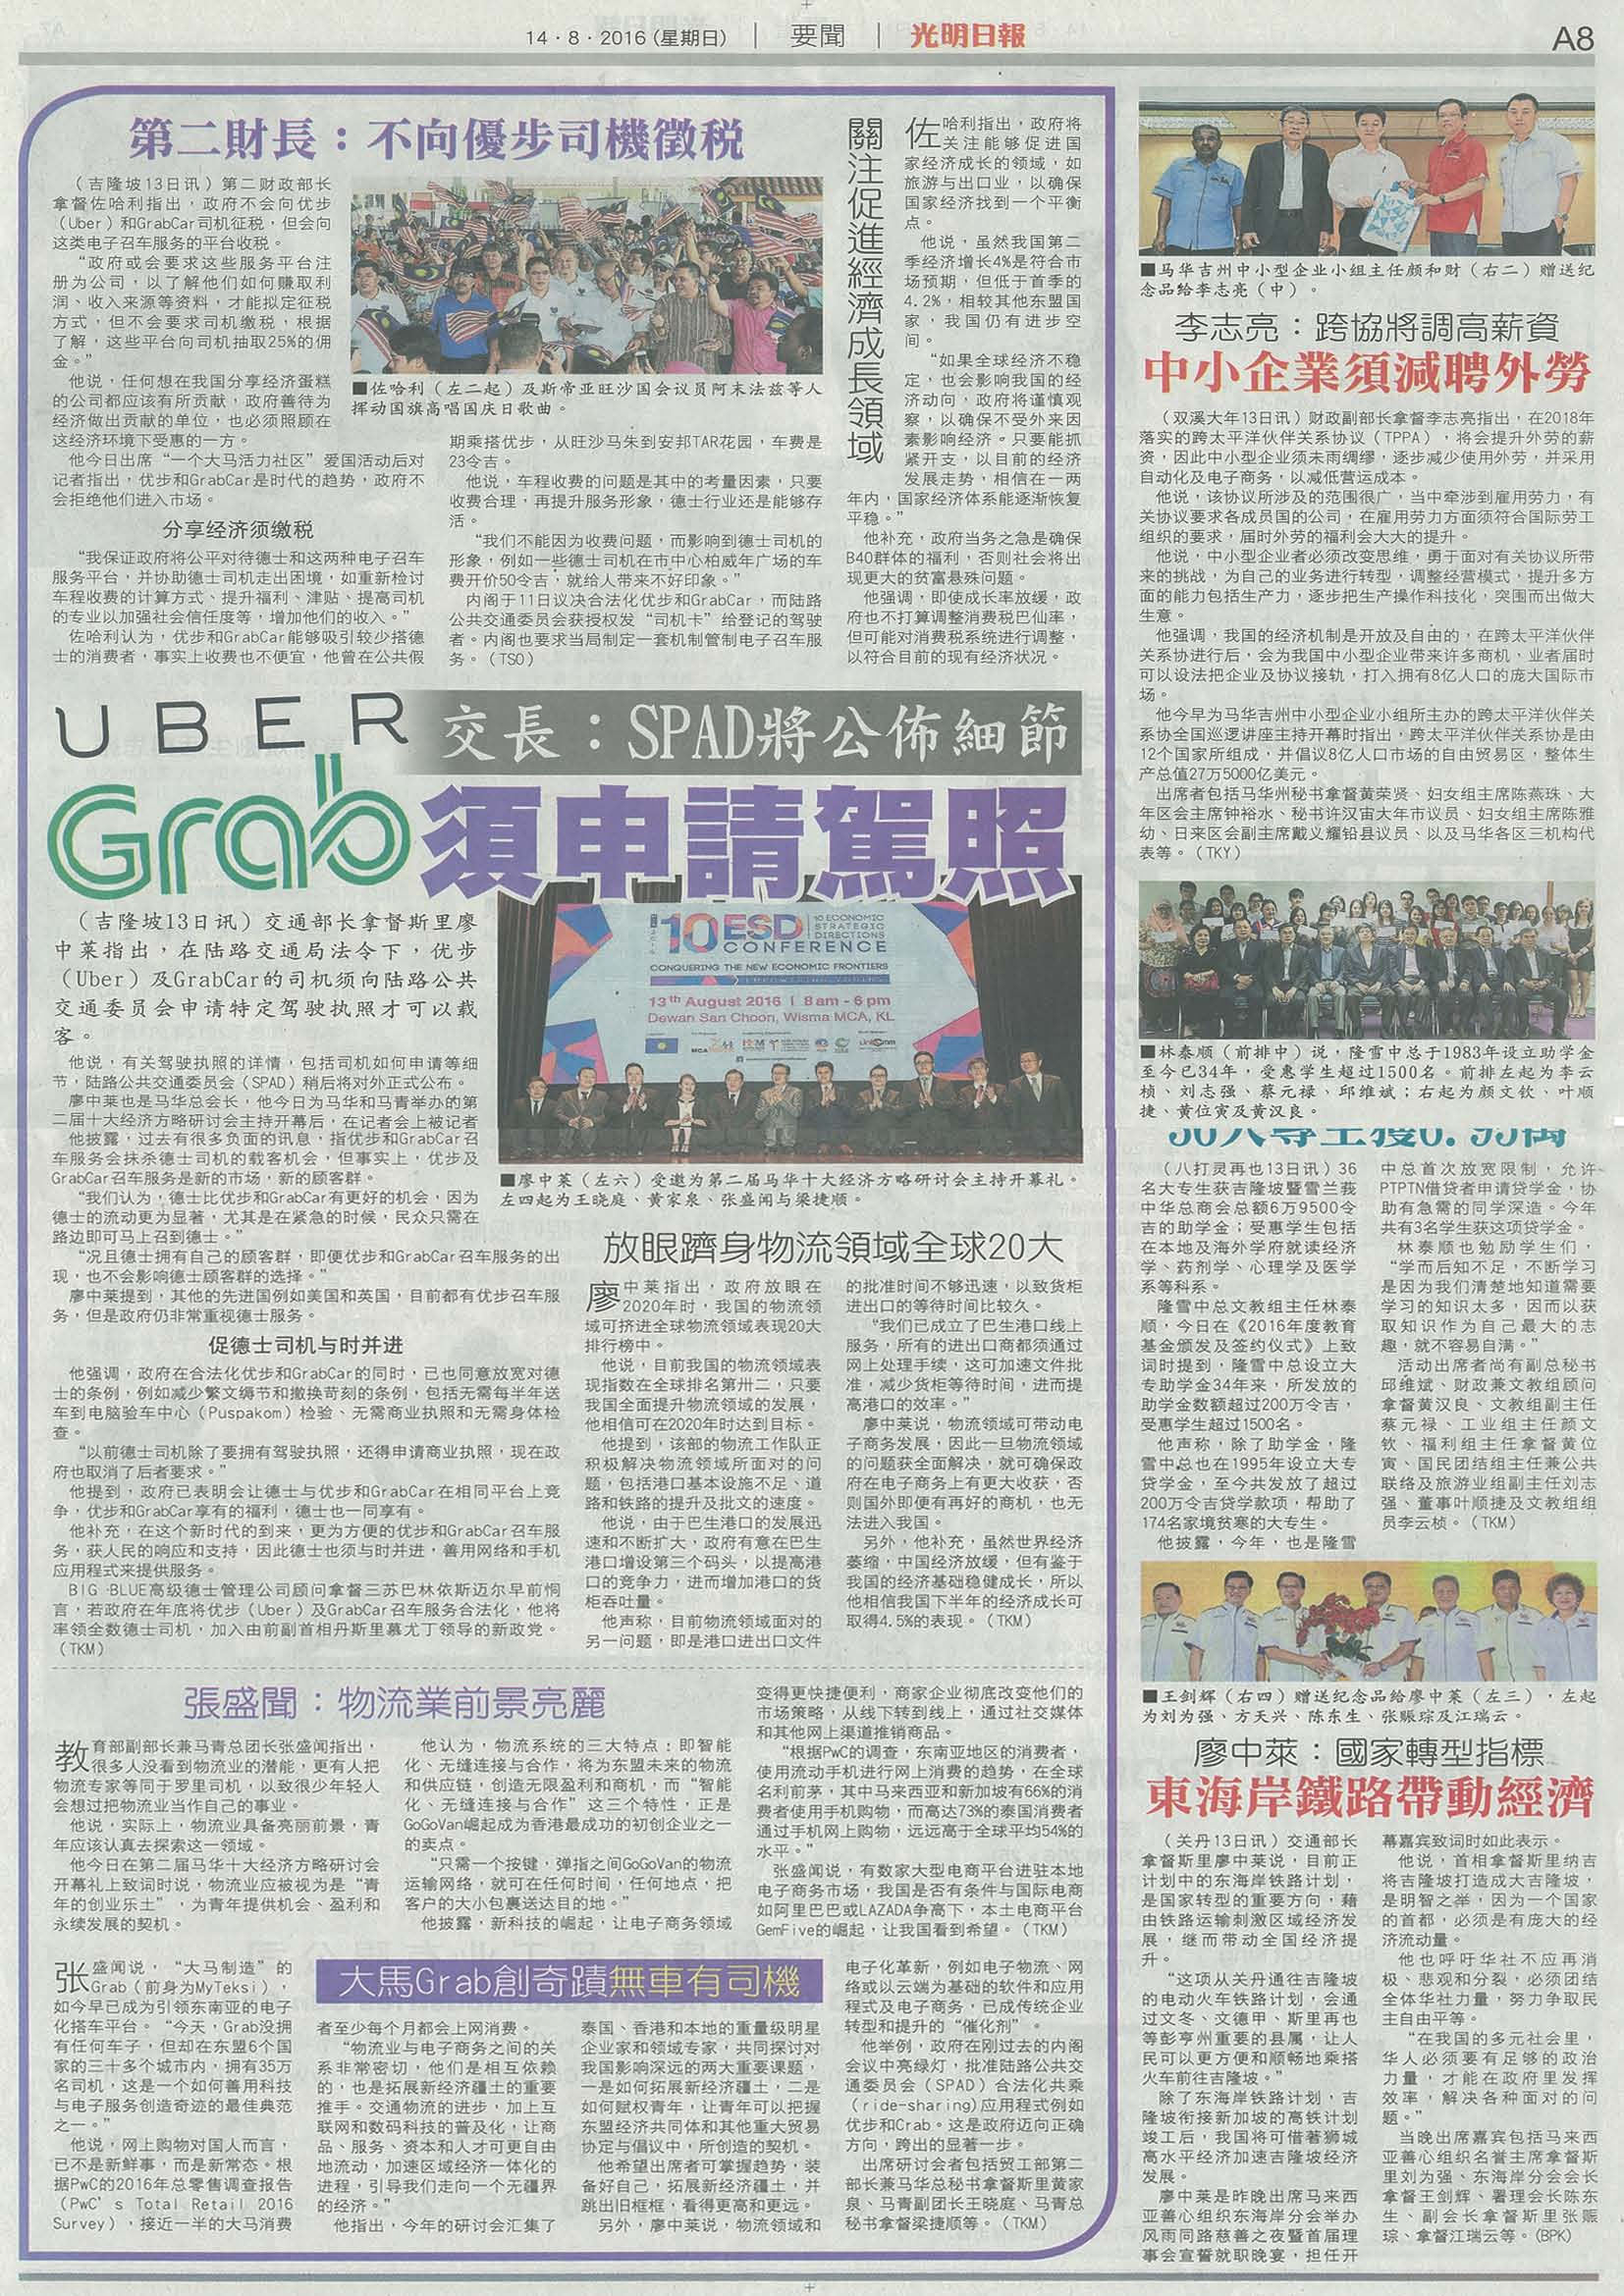 Grab and Uber should apply license